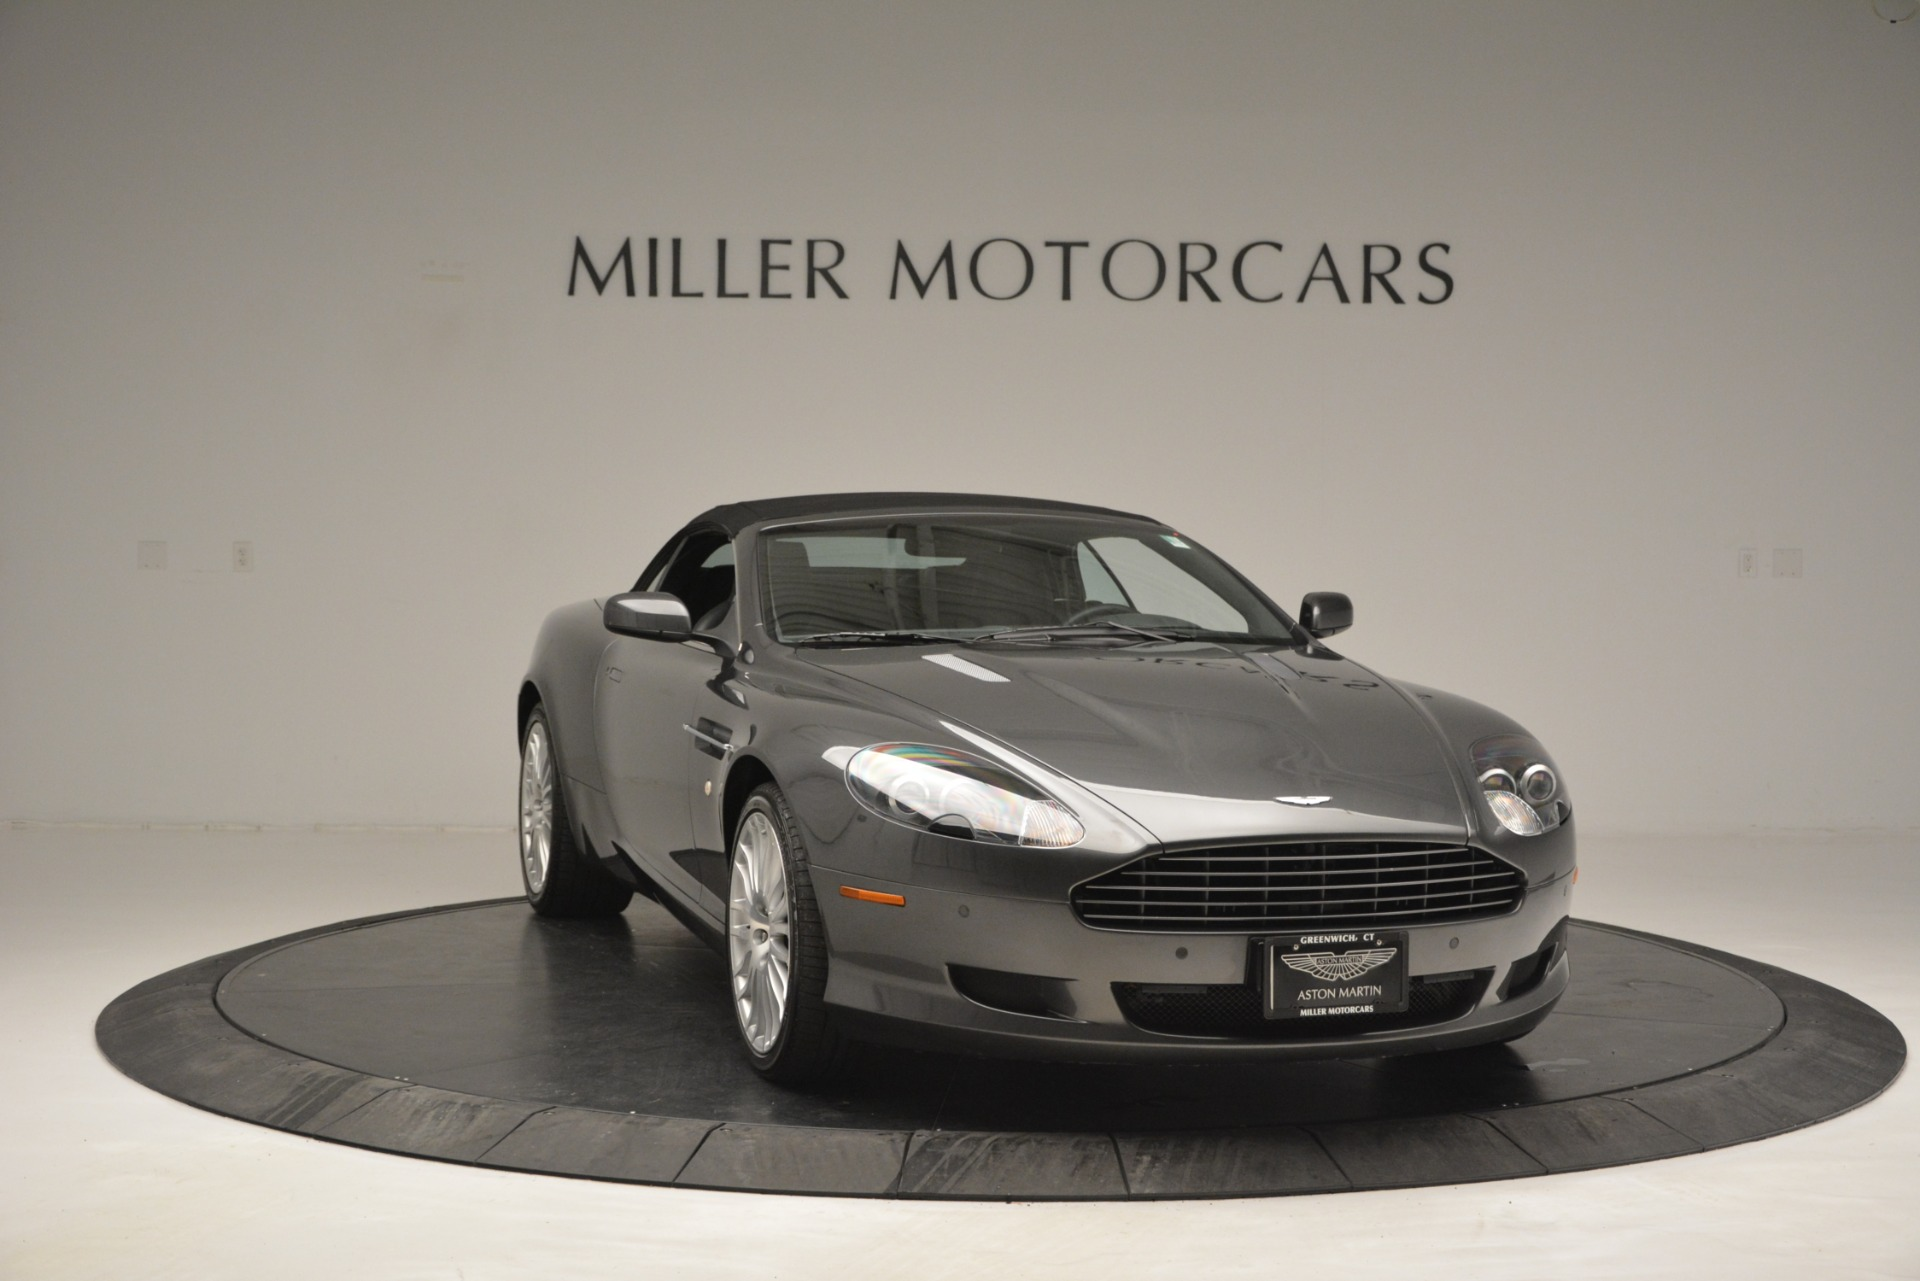 Used 2009 Aston Martin DB9 Convertible For Sale In Greenwich, CT 2930_p15